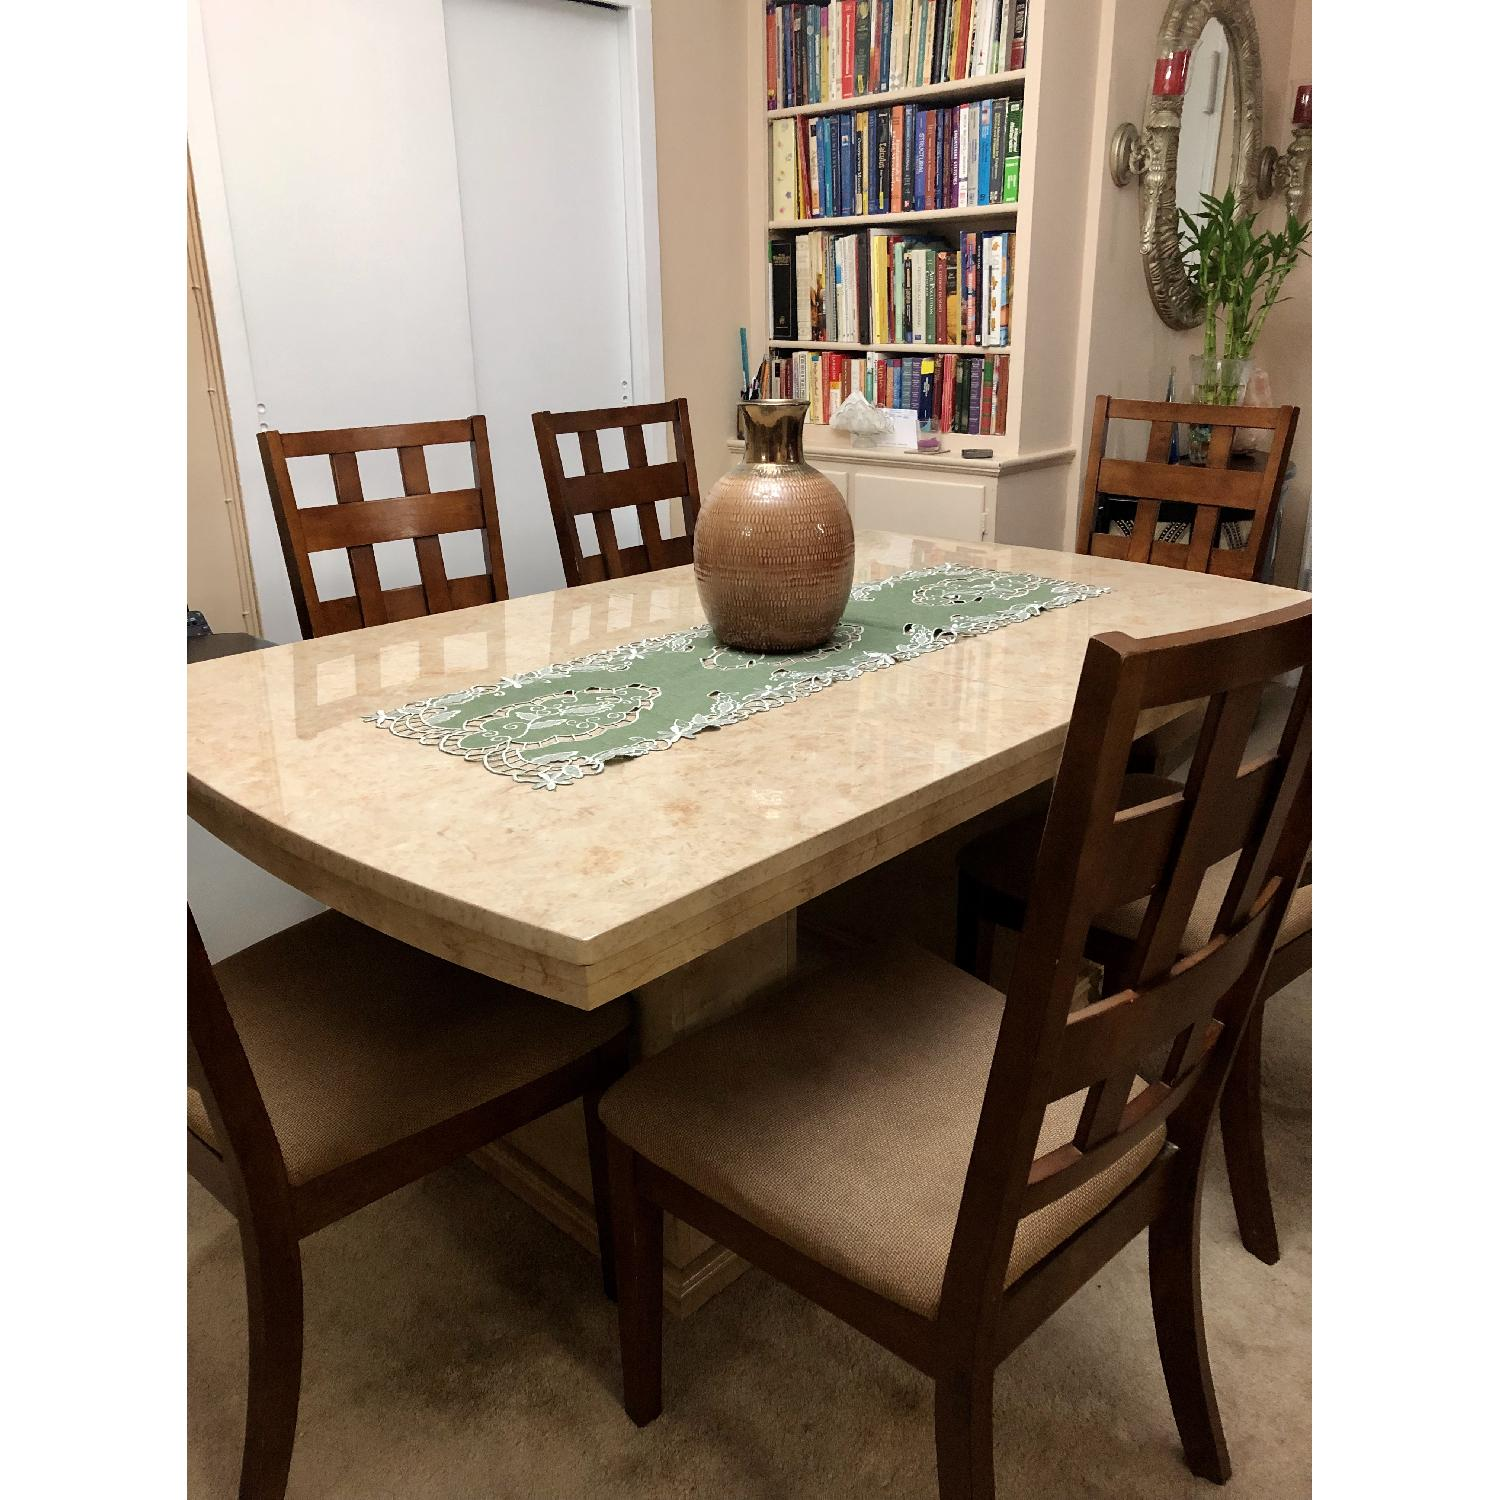 Seaman's Furniture Natural Italian Lacquer Dining Table - image-3